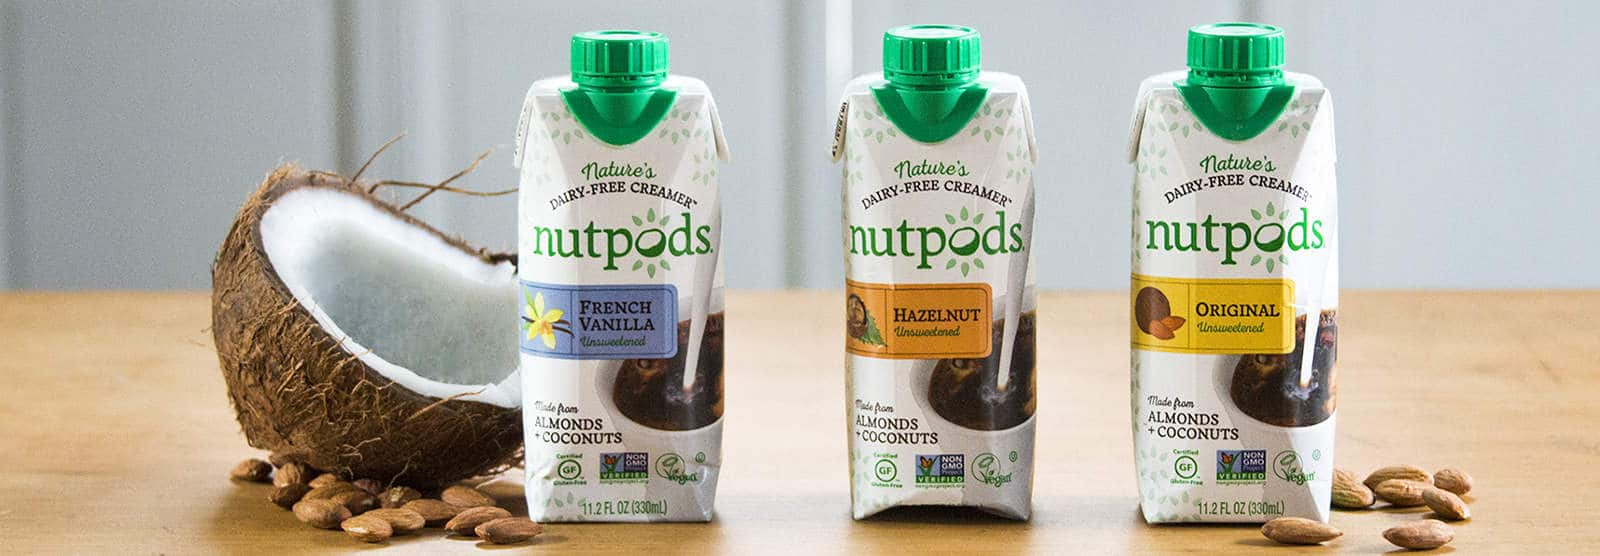 Dairy-free Creamer Brand Nutpods® Chosen for Holistic Cruise and Adds New Flavor